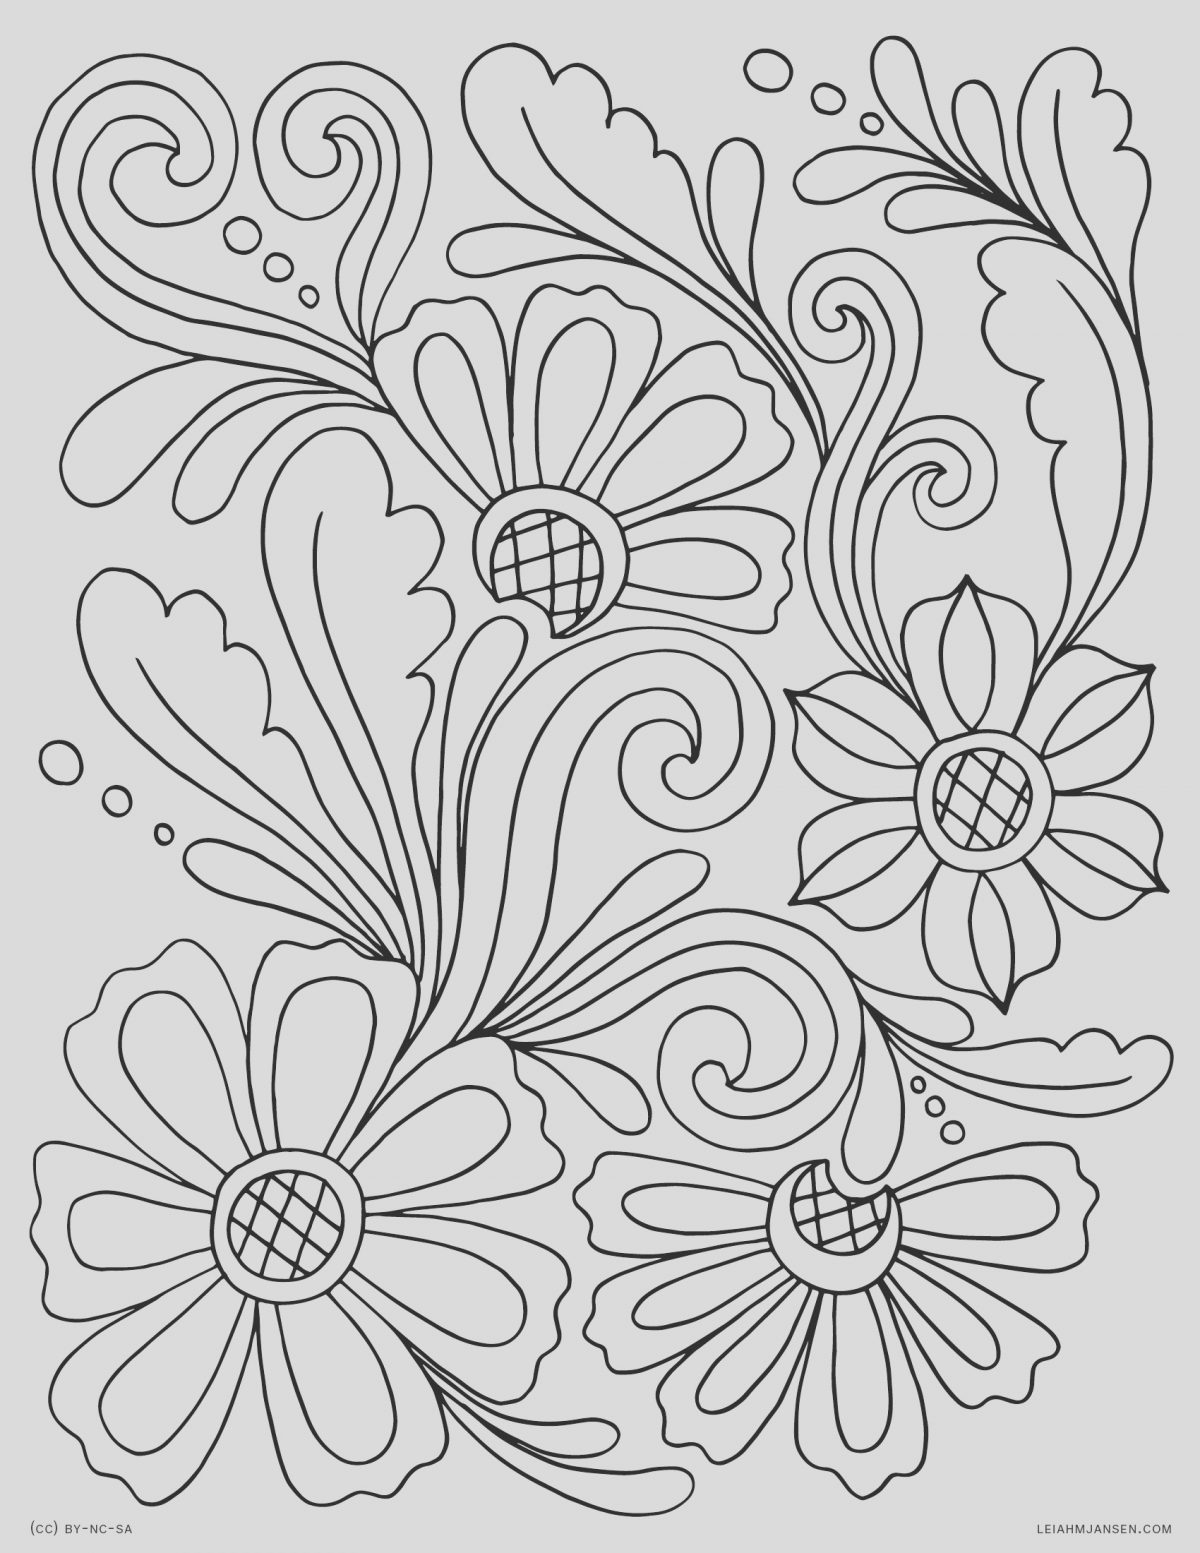 Coloring Sheet for Adults Printable Elegant Coloring Pages